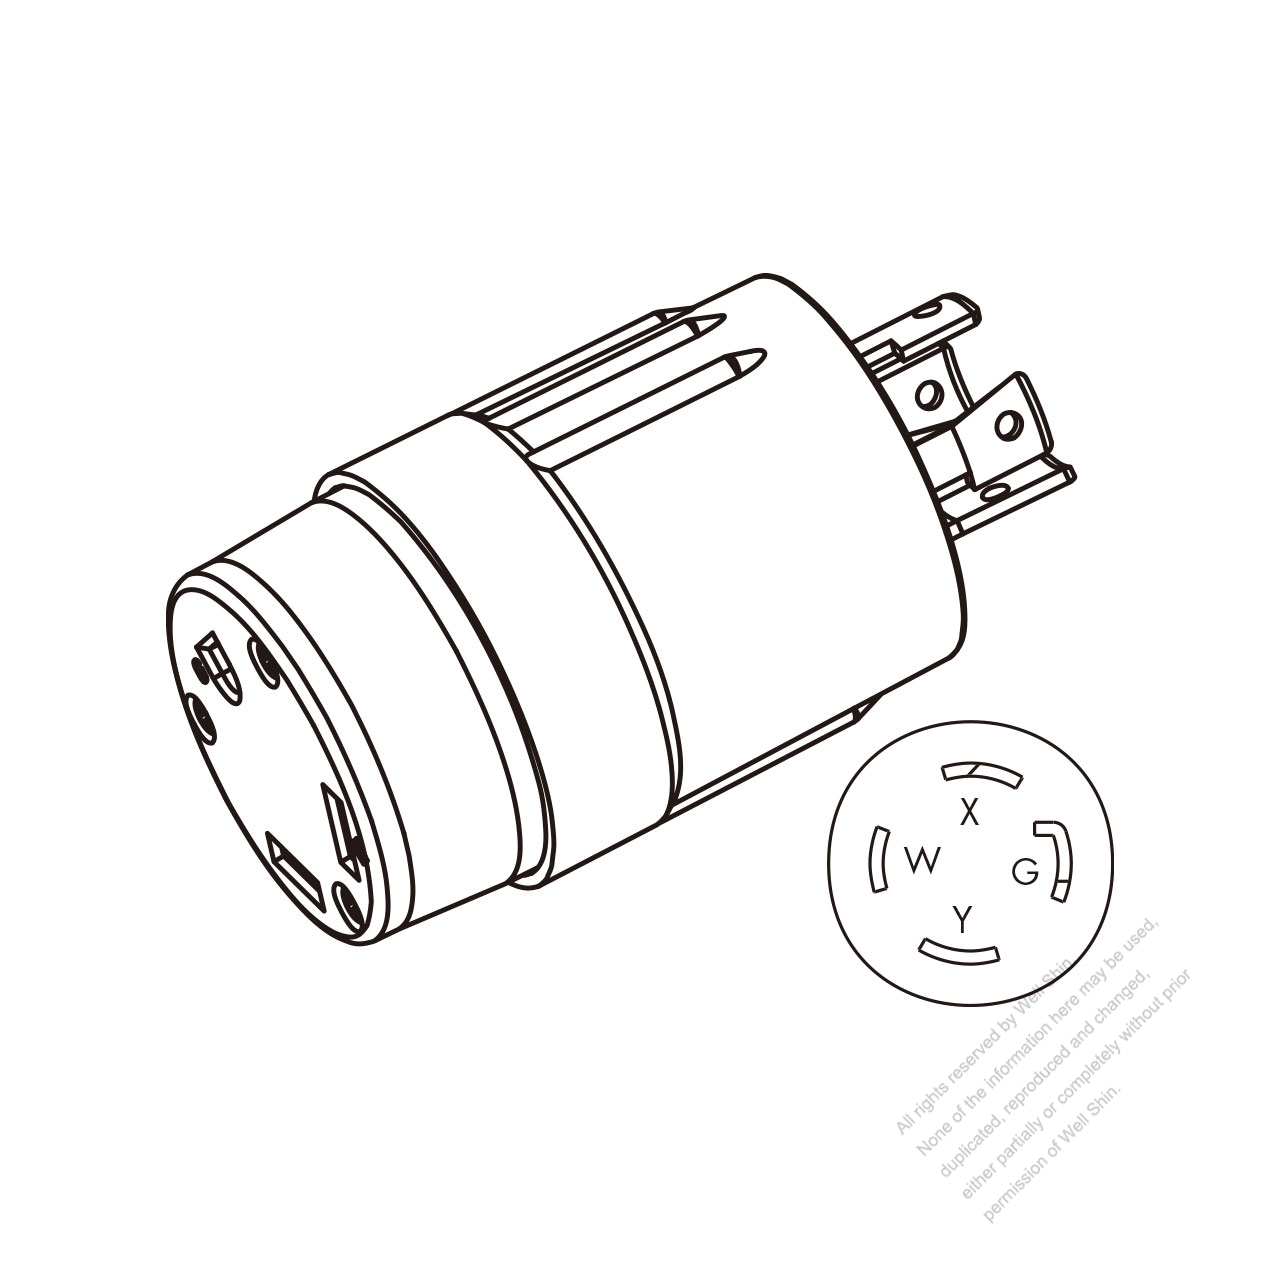 RV Adapter Plug, NEMA L14-30P to TT-30R, 2 P, 3 Wire